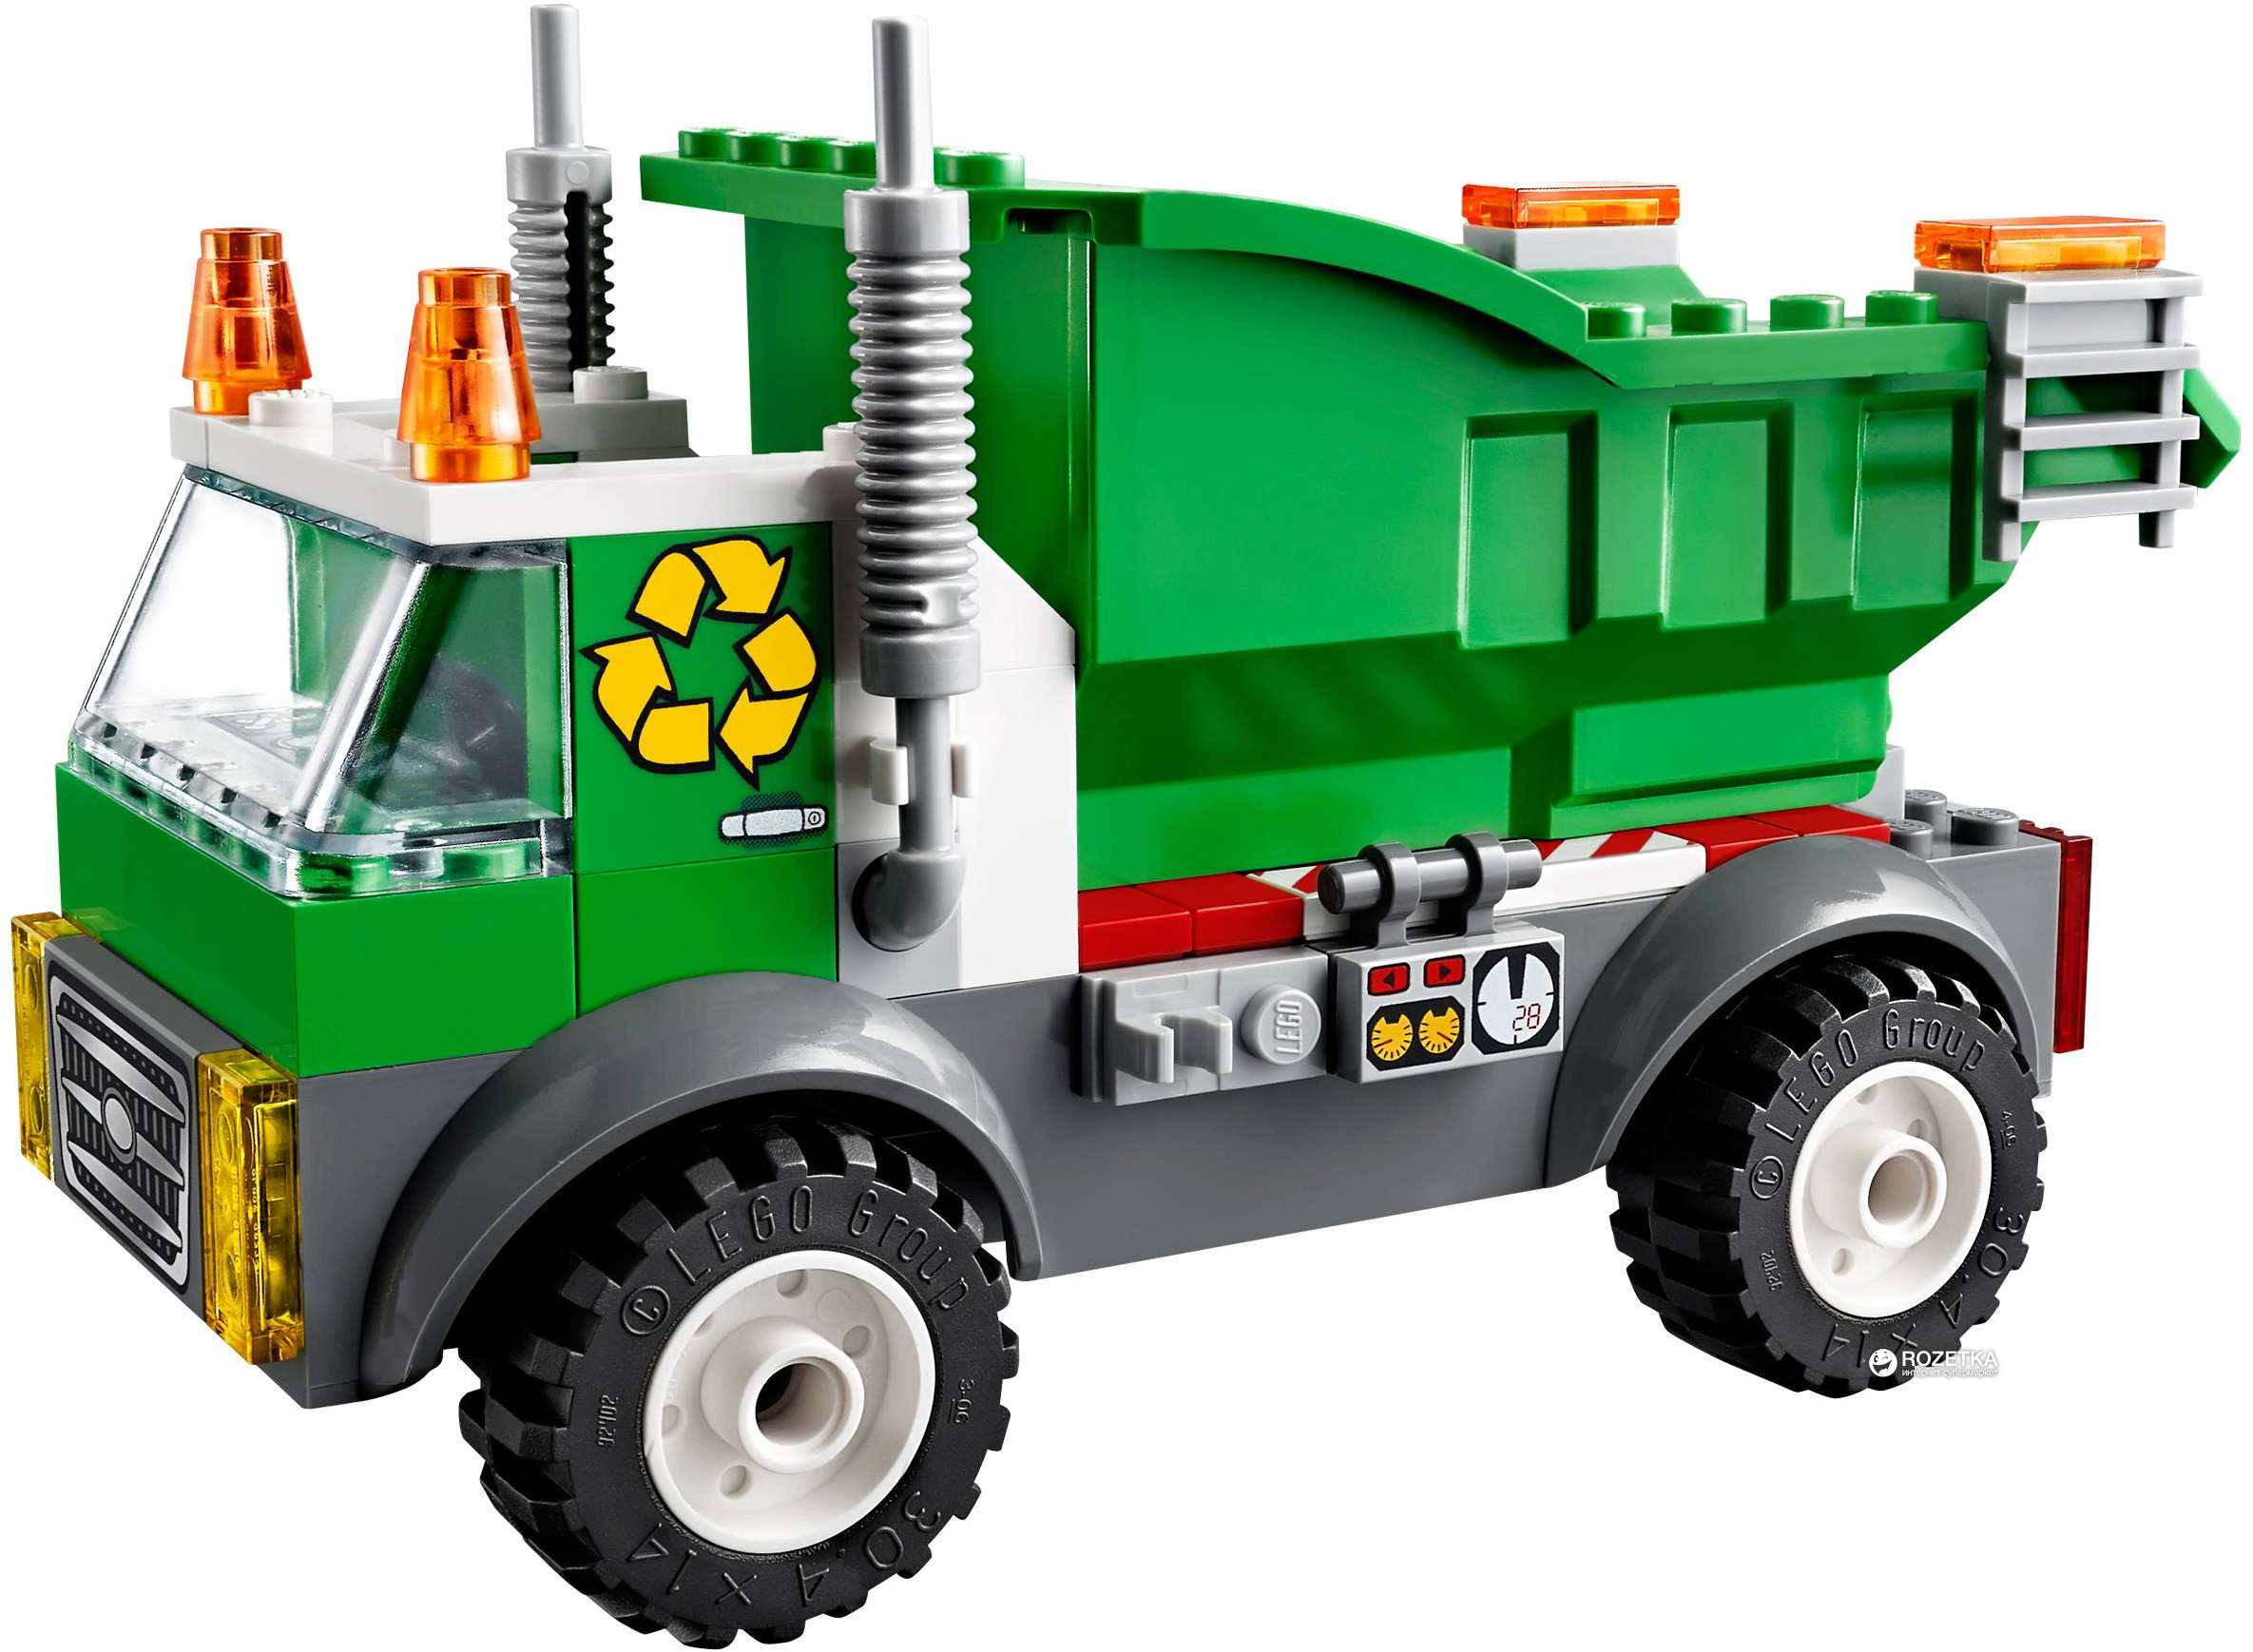 dump truck toys r us with P2118217 on P2118217 furthermore Siku Scania R620 Topline Rc Truck also Theme Toy Story as well Kids Rides Ages 4 To 7 also Toys R Us FAST LANE Remote Control Mega Crane.